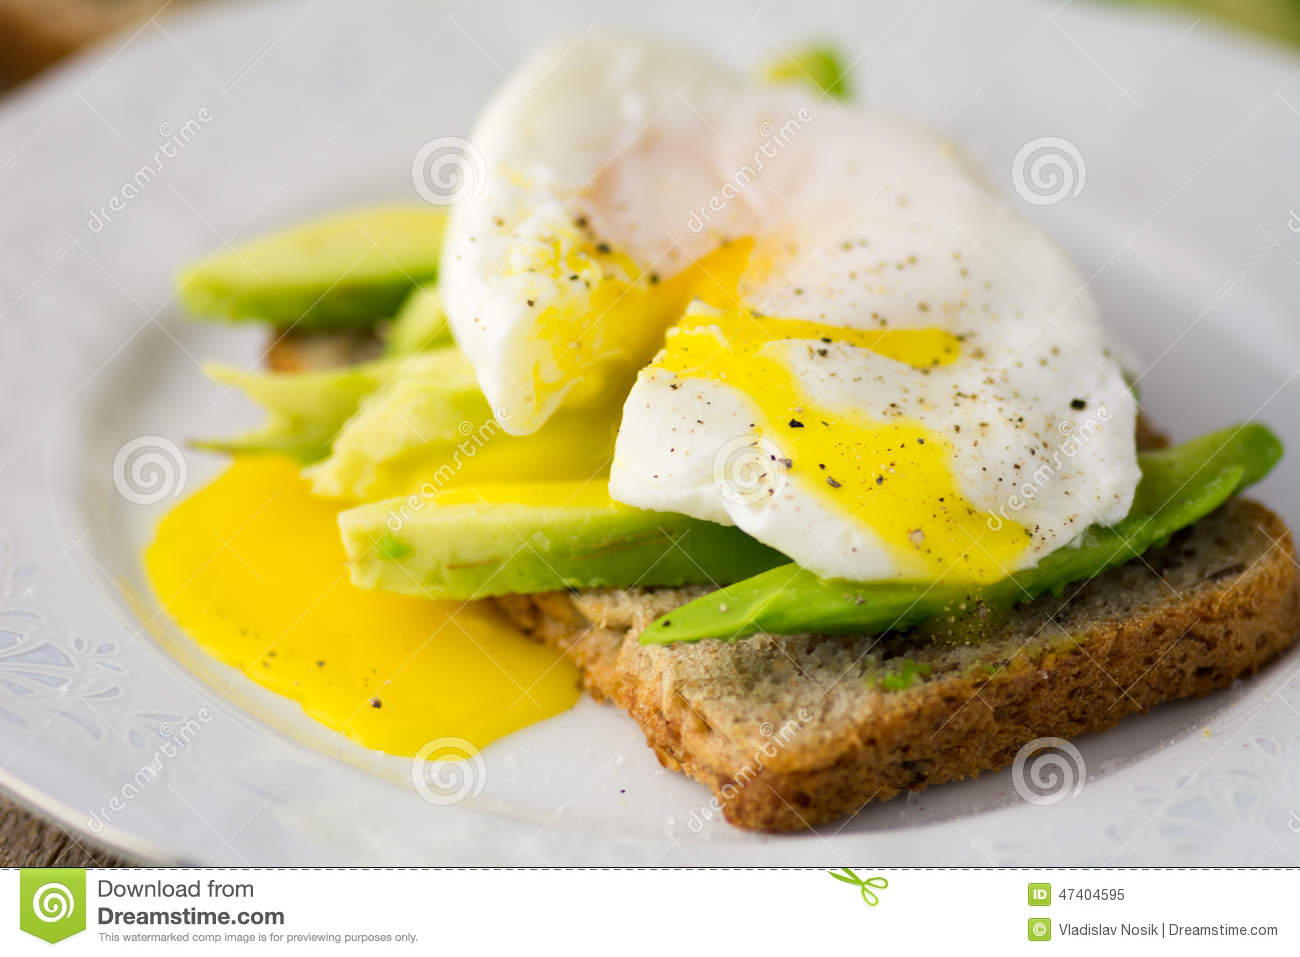 Toast With Avocado And Poached Egg Stock Photo - Image: 47404595